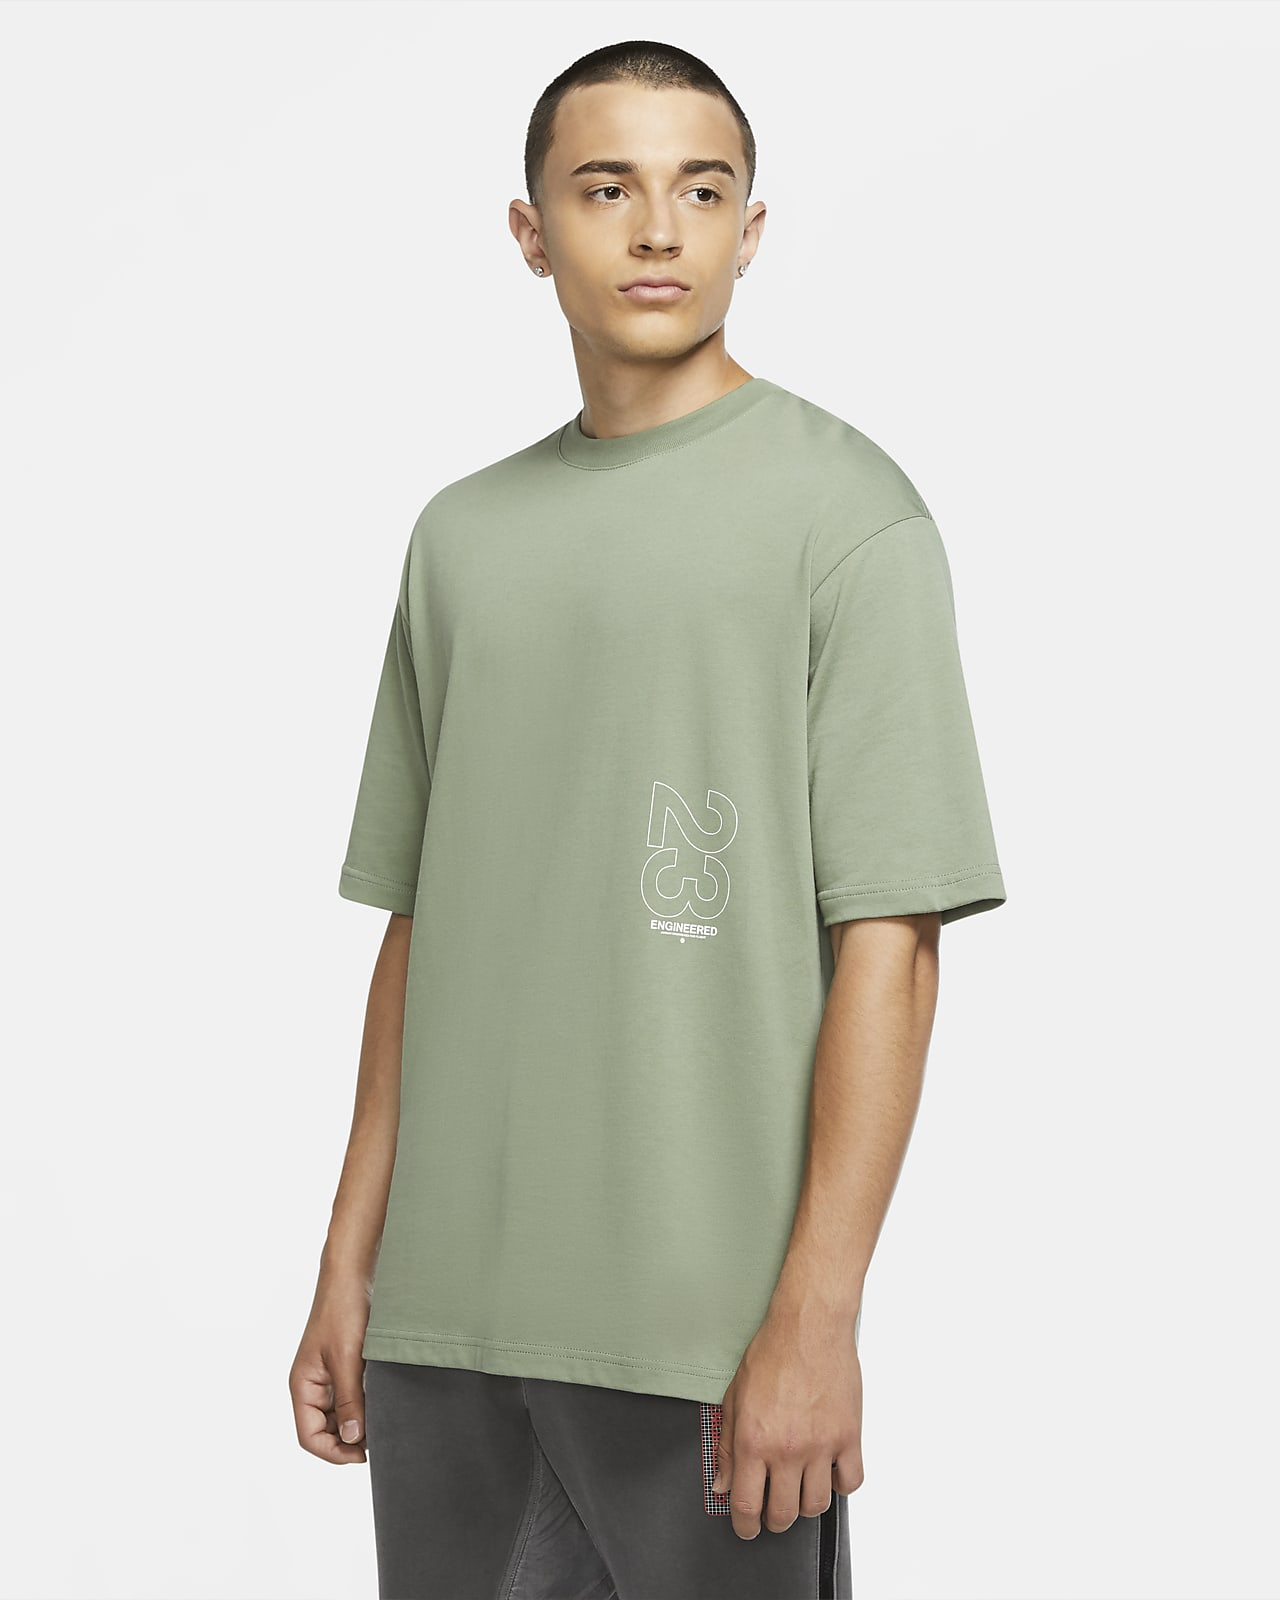 Jordan 23 Enginereed Men's Short-Sleeve Crew